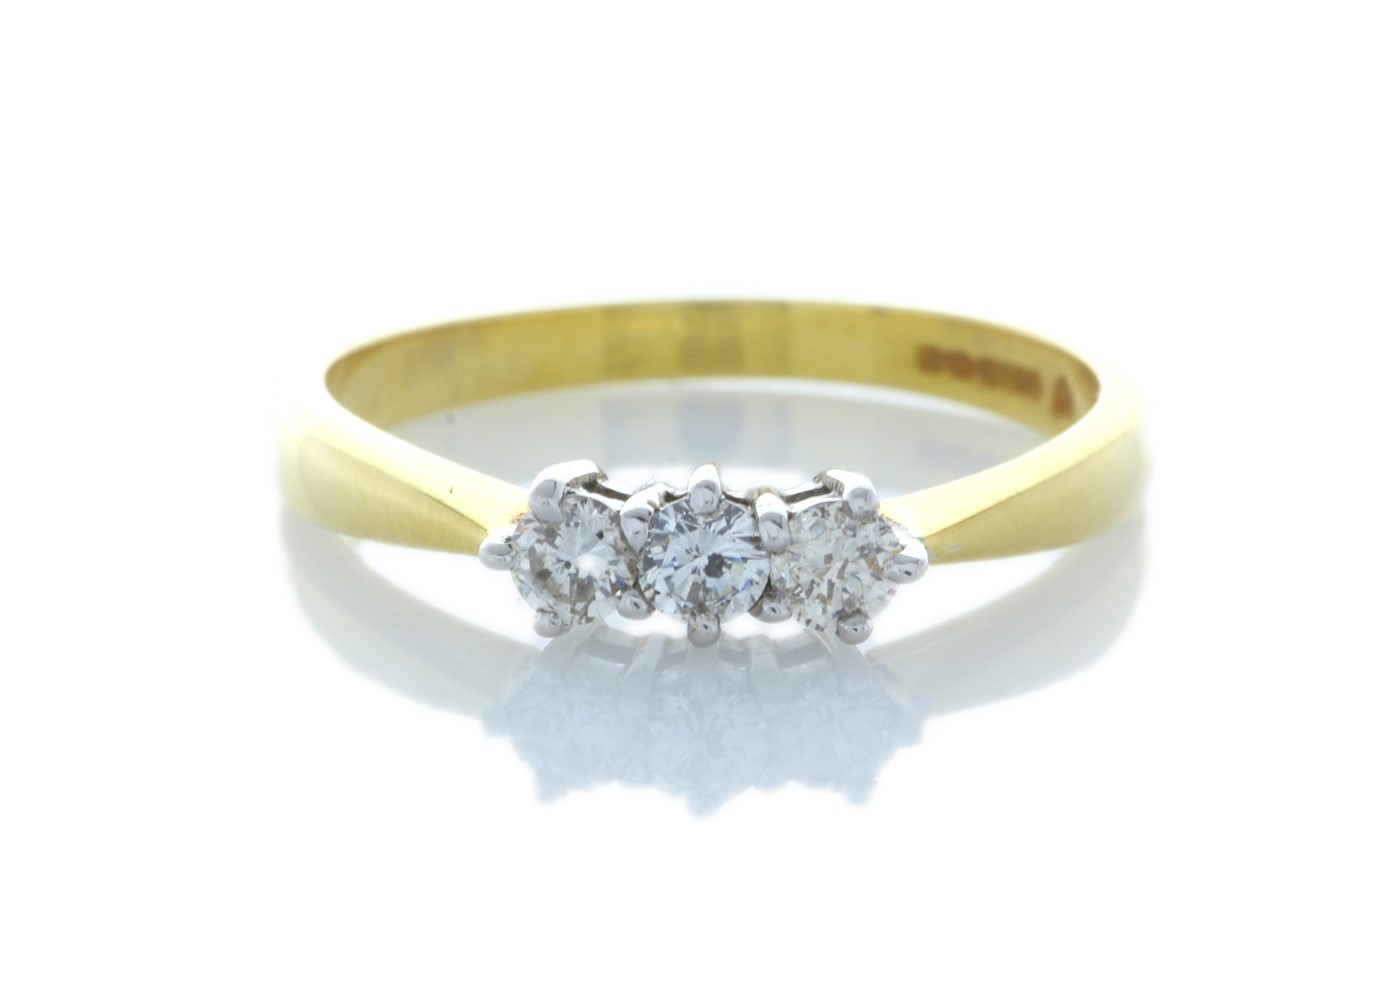 Lot 37 - 9ct Yellow Gold Three Stone Claw Set Diamond Ring 0.25 Carats